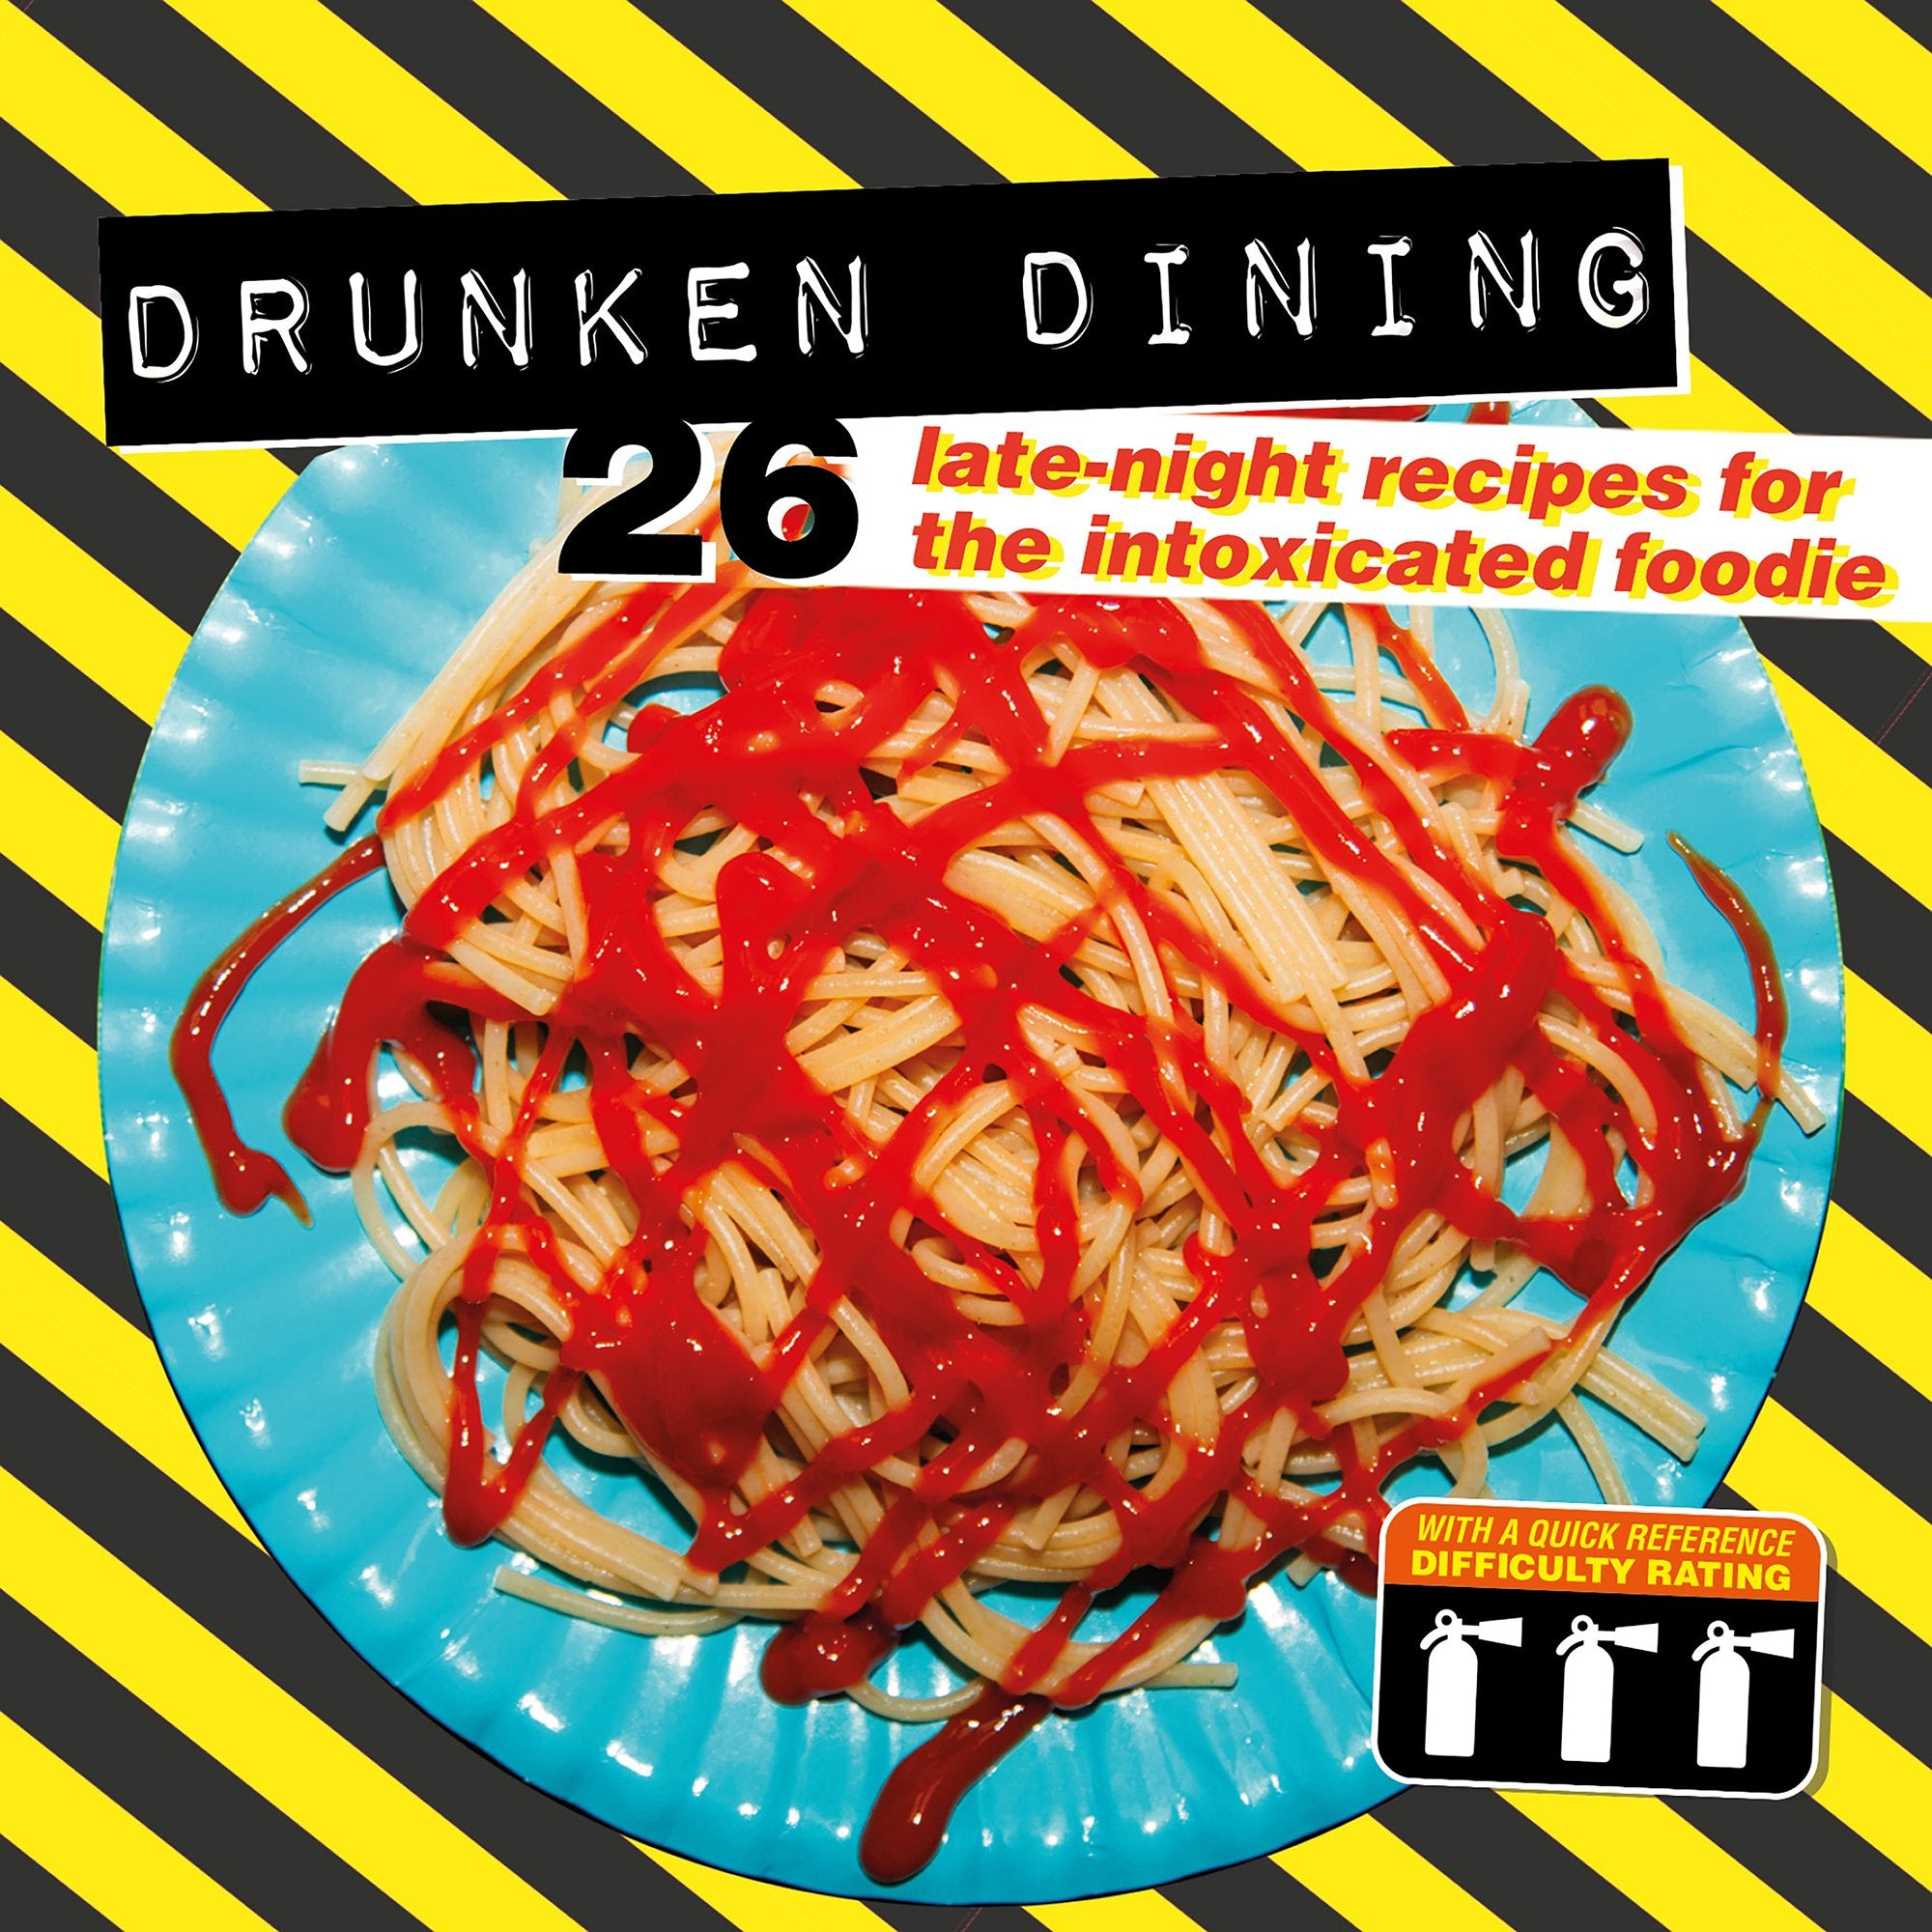 Drunken Dining Recipe Book - Half Moon Bay US